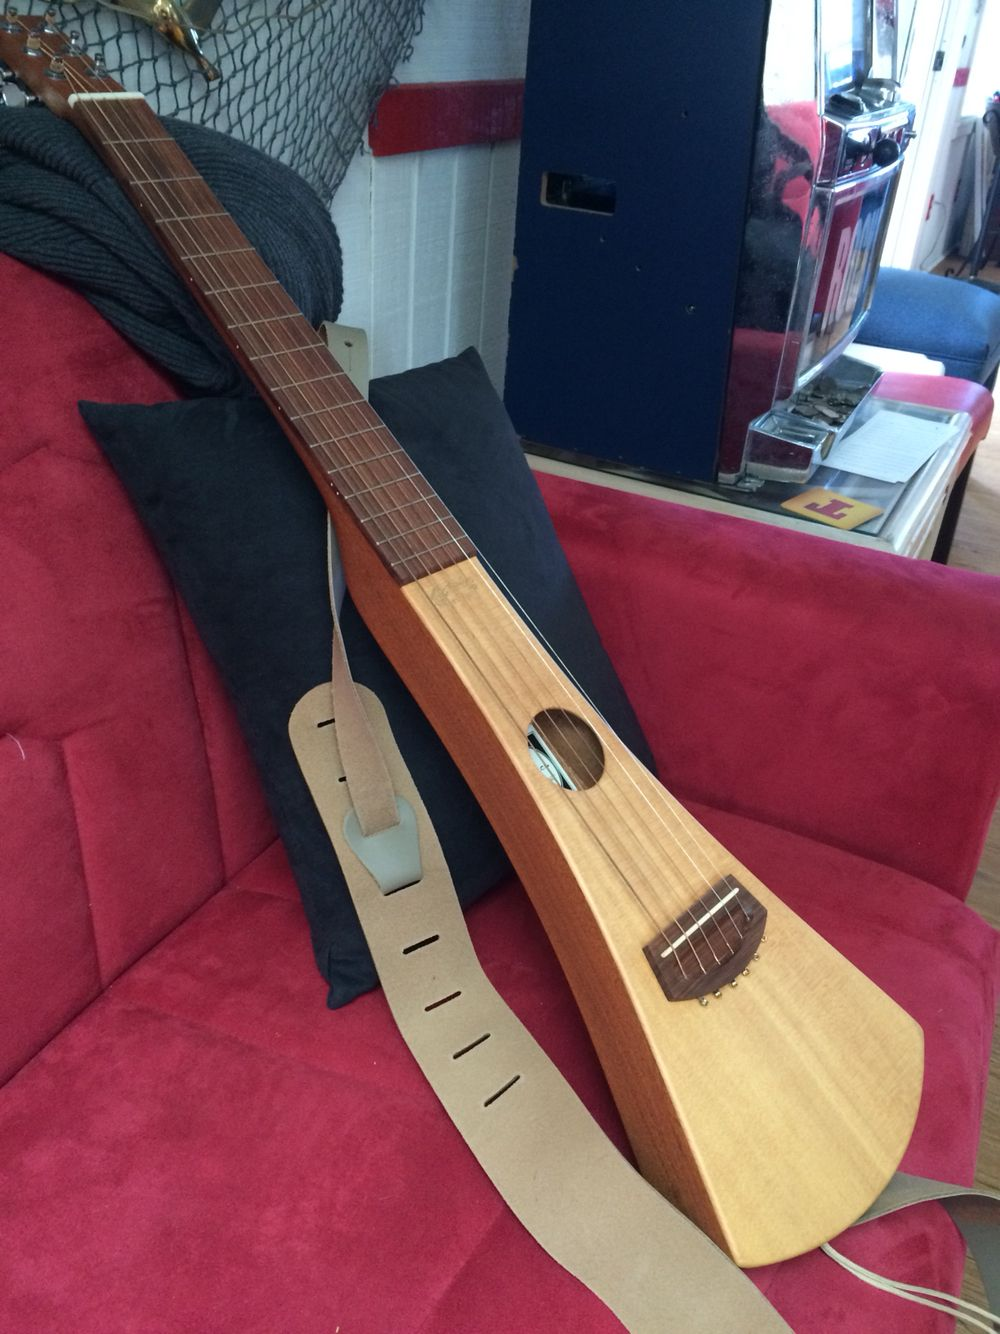 Such a beautiful nylon, Classical Guitar  #AcousticMusic